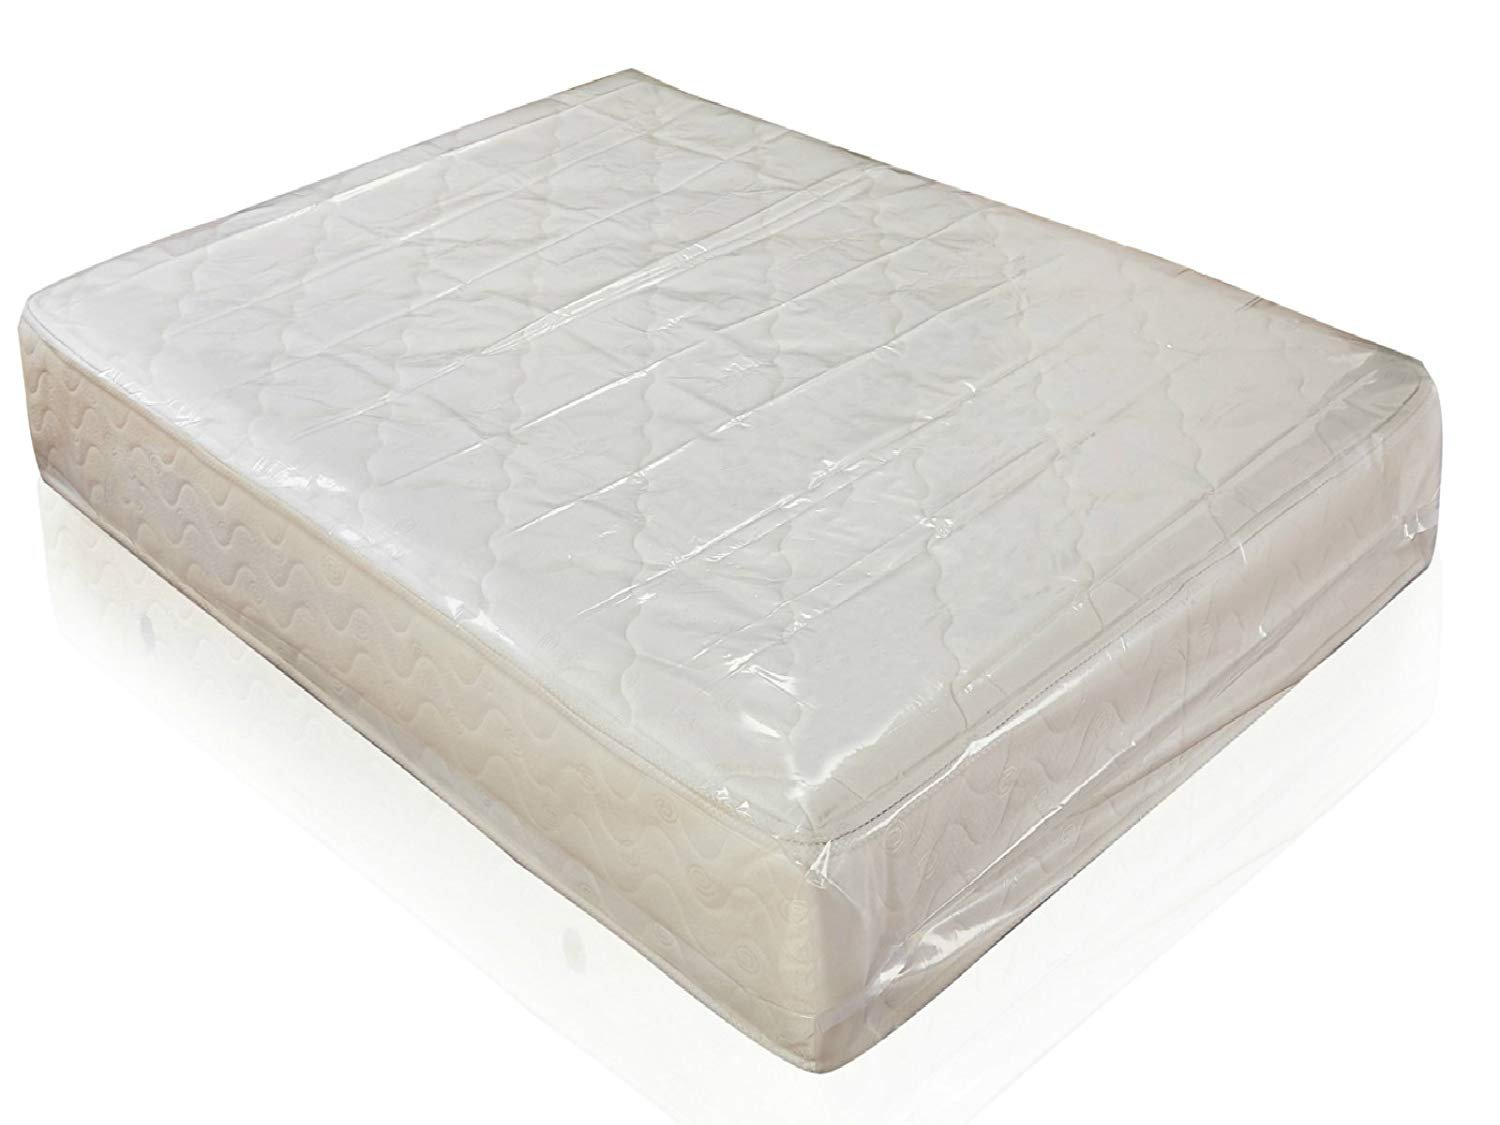 Mattress Bags for Moving, Mattress Bag 4 mil Thick, Heavy Duty Mattress Storage Bag Cover, Fits Standard, Extra-Long, Pillow-top Variation, for Storage, Queen